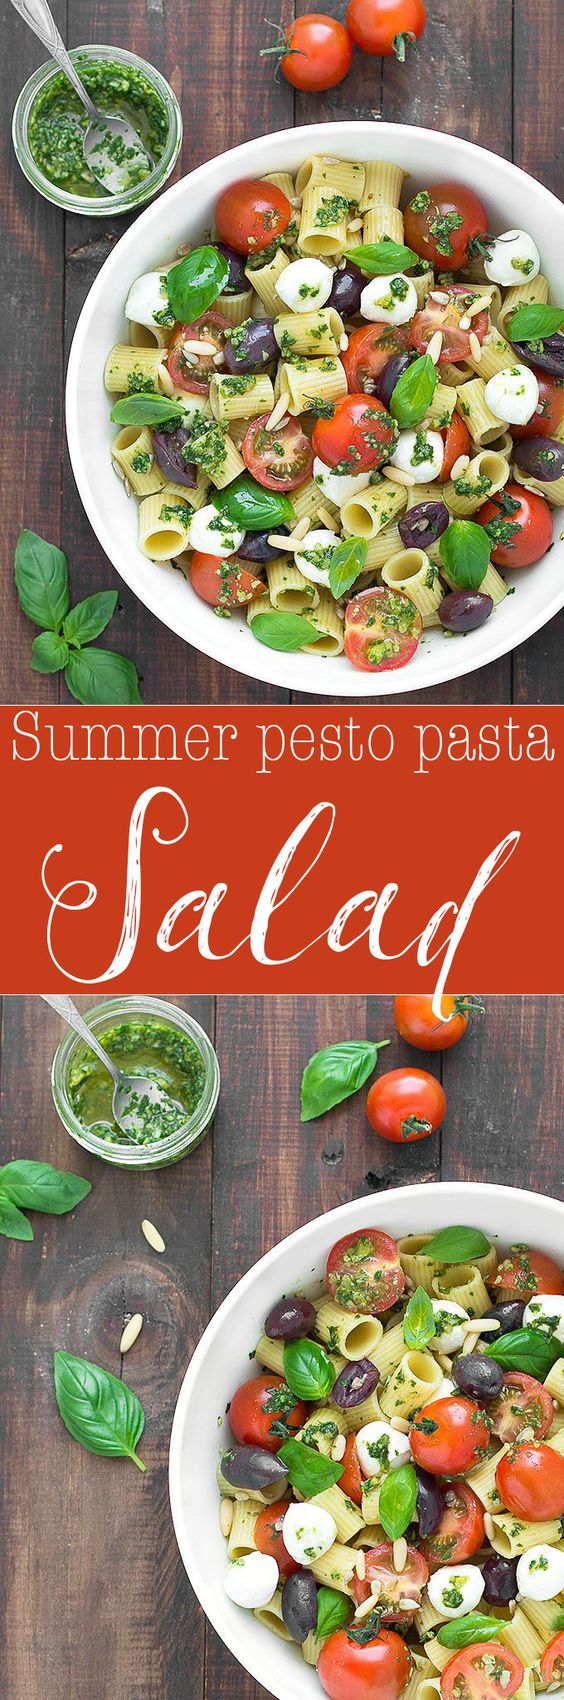 Summer pesto pasta salad: an easy pasta salad, filled with Mediterranean flavors and ready in under 15 minutes.